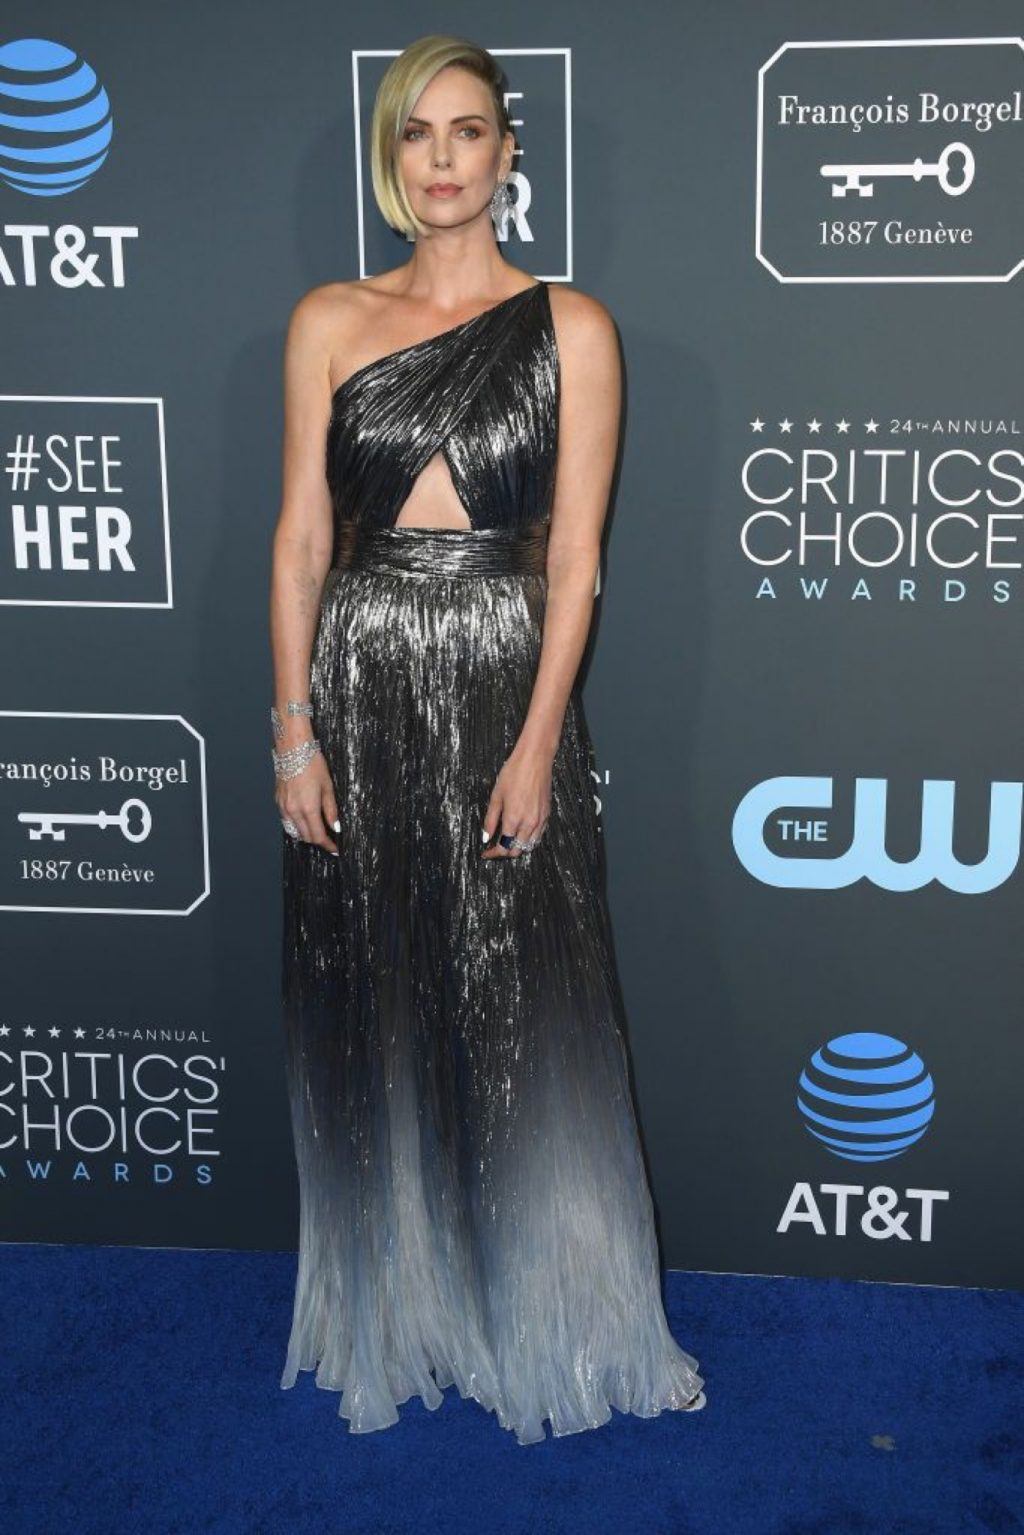 Who Wore What: The Best of the 2019 Critics' Choice Awards Red Carpet